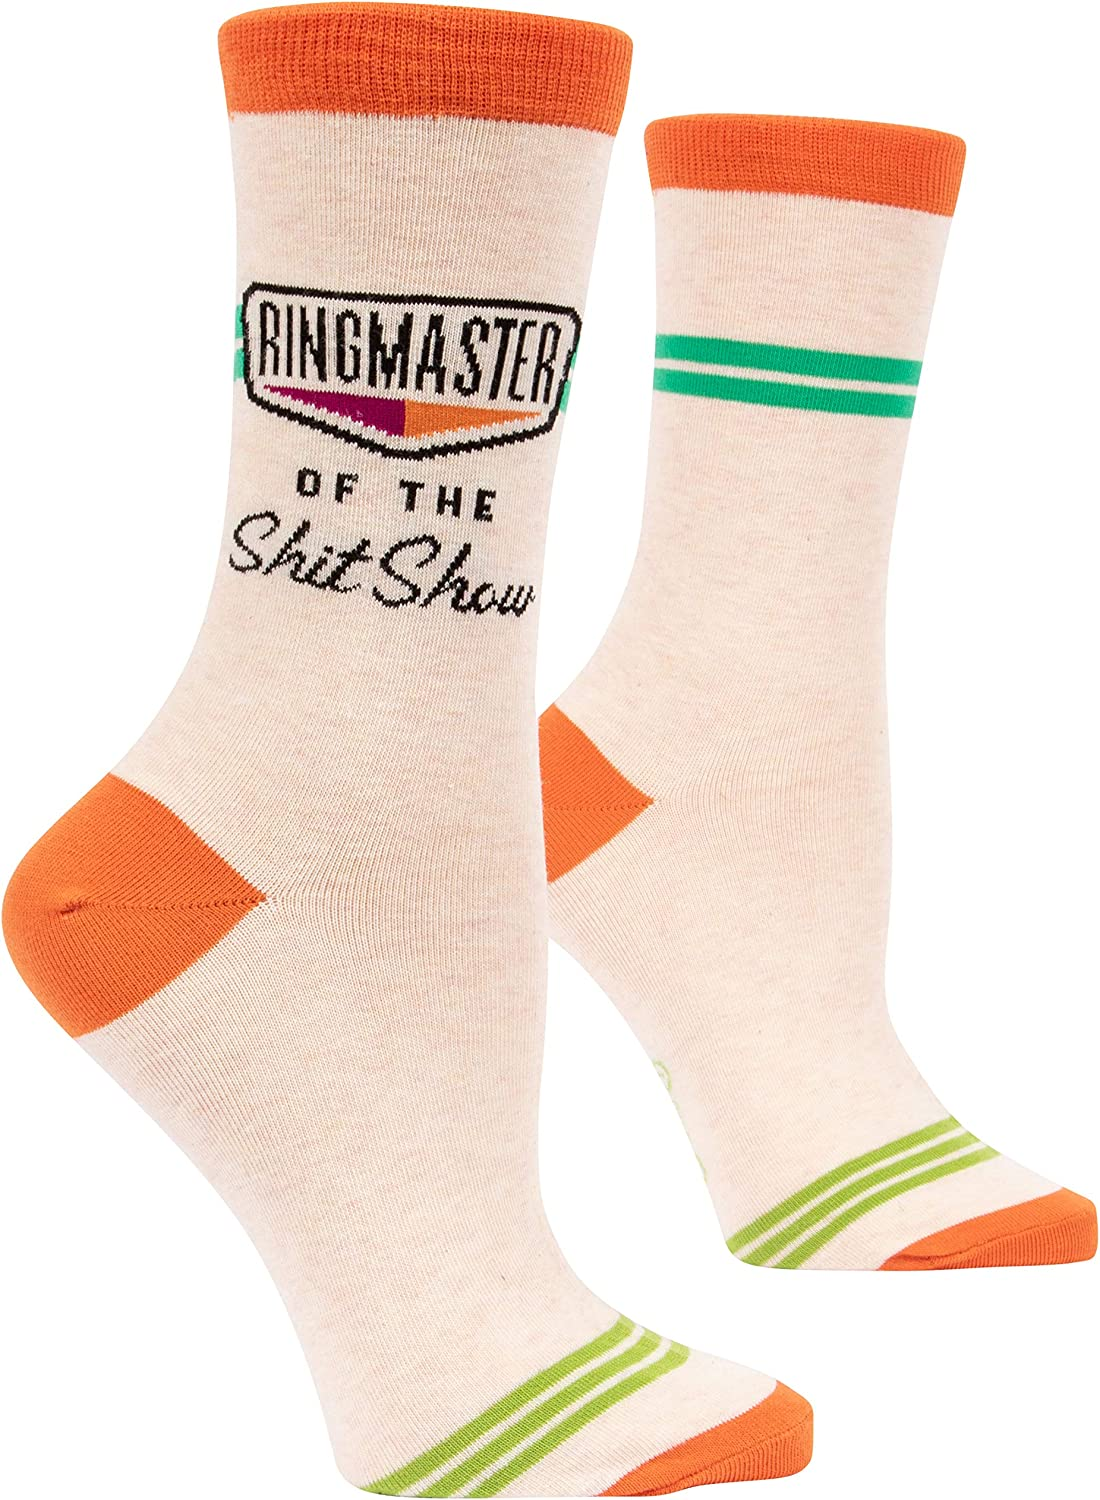 Blue Q Socks, Women's Crew, Ringmaster of The Shit Show (Orange) (Women's Shoe Size 5-10): Clothing